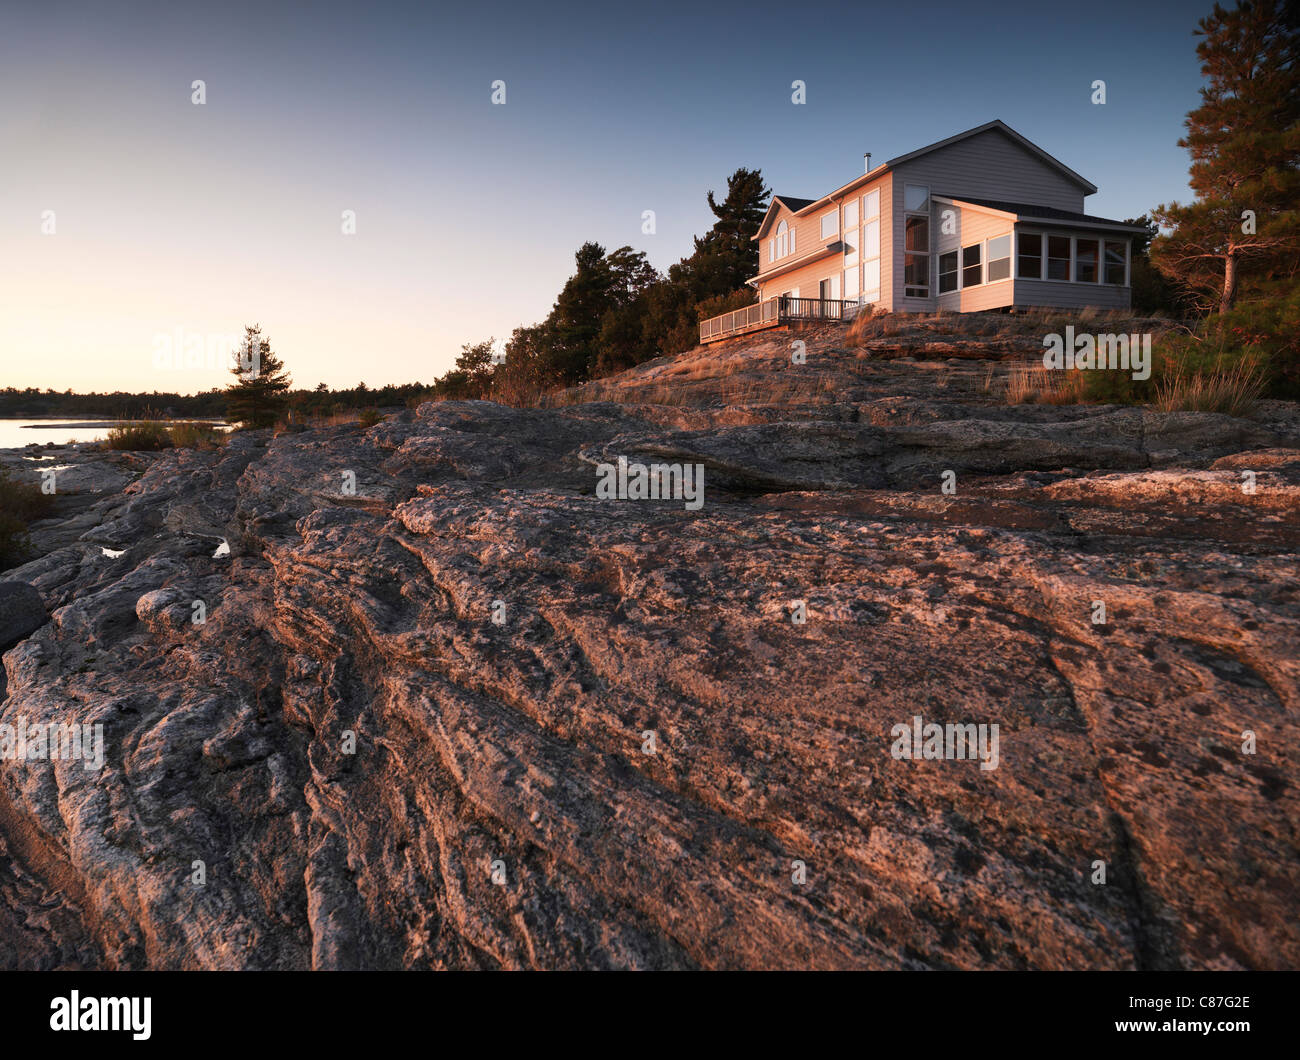 Sunset scenery of a cottage house on a beautiful rocky shore - Stock Image